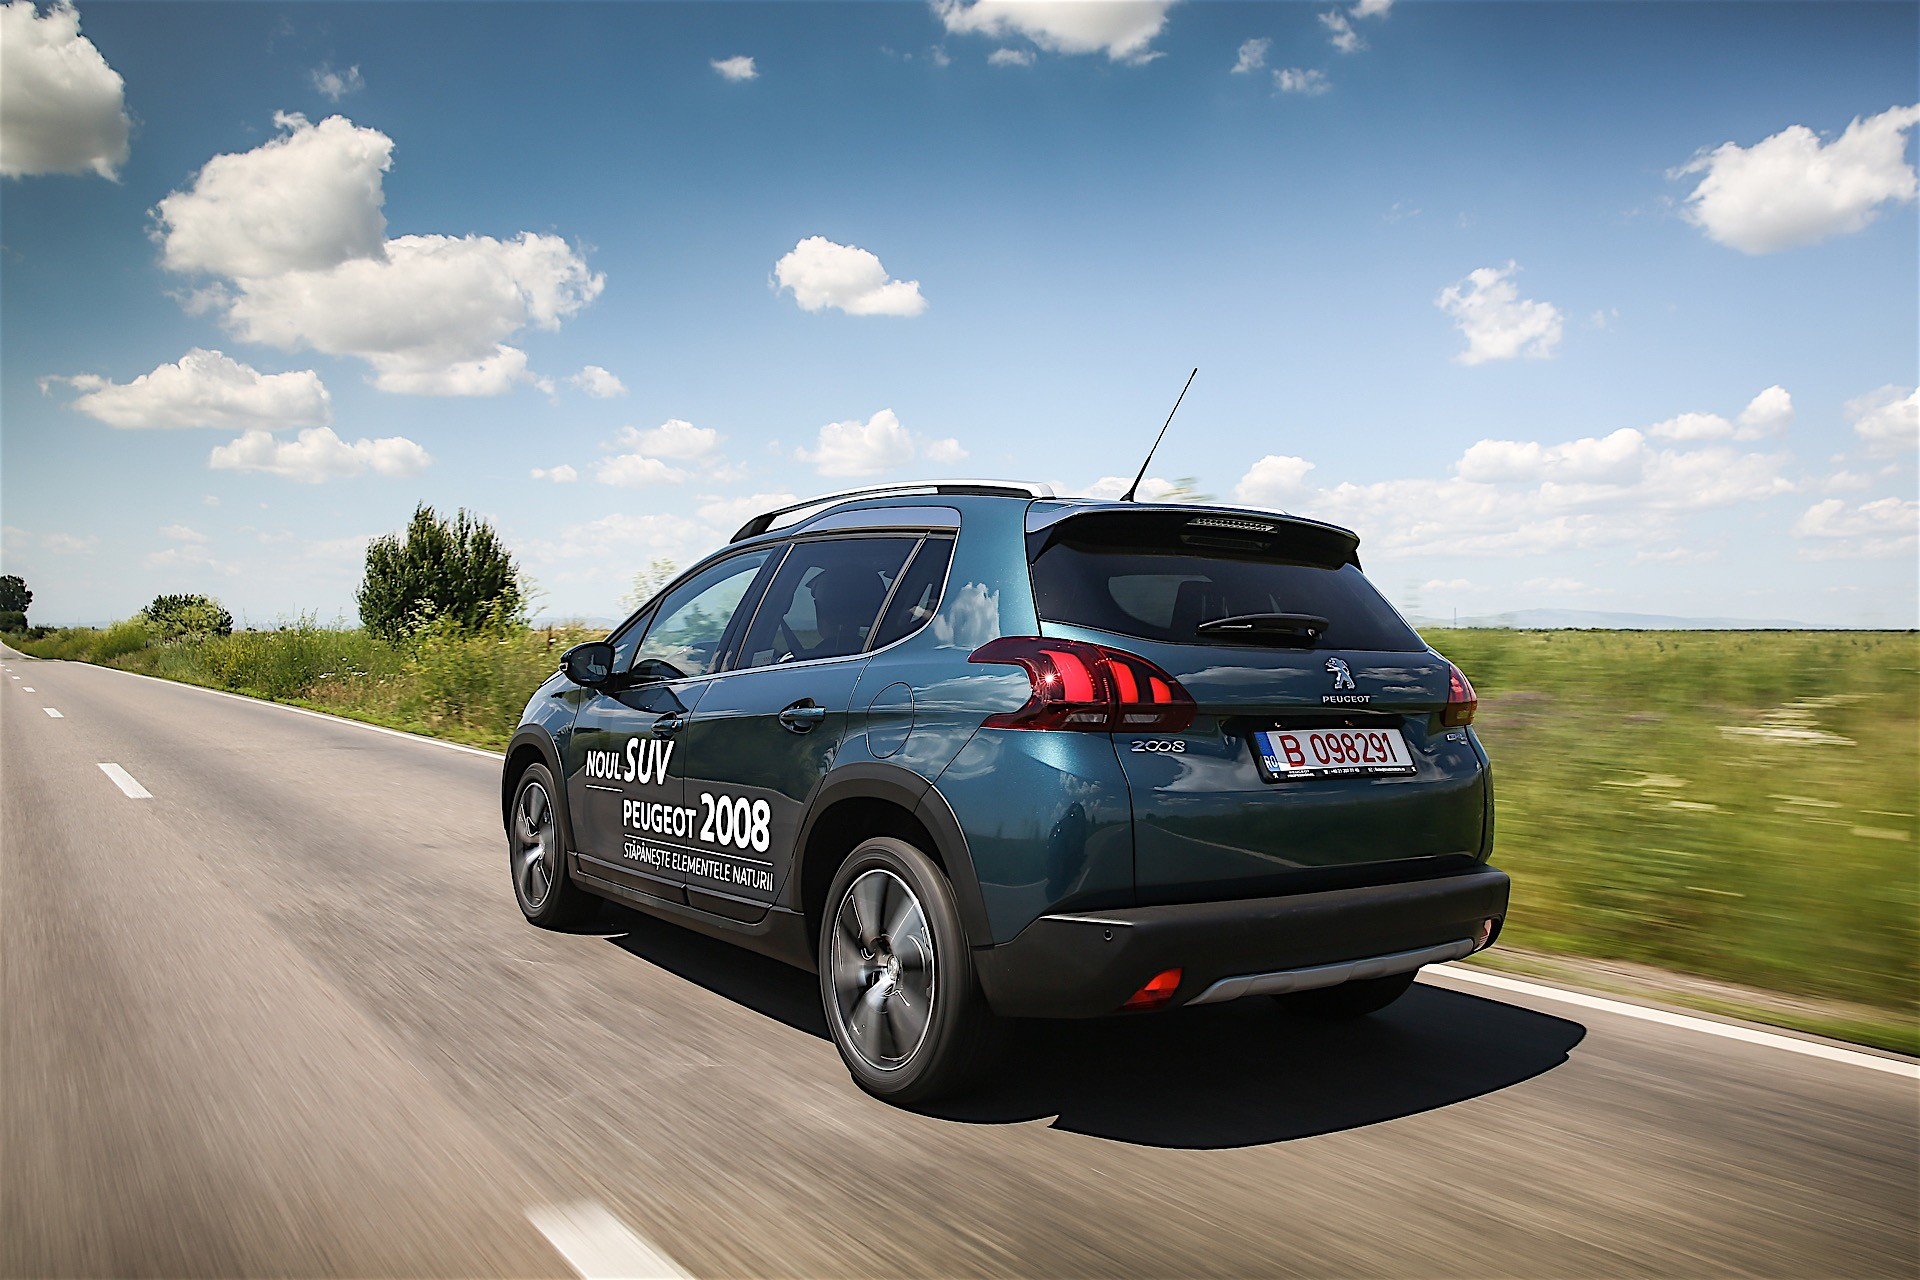 peugeot 2008 crossover receives 1 300 preorders in uk autoevolution. Black Bedroom Furniture Sets. Home Design Ideas